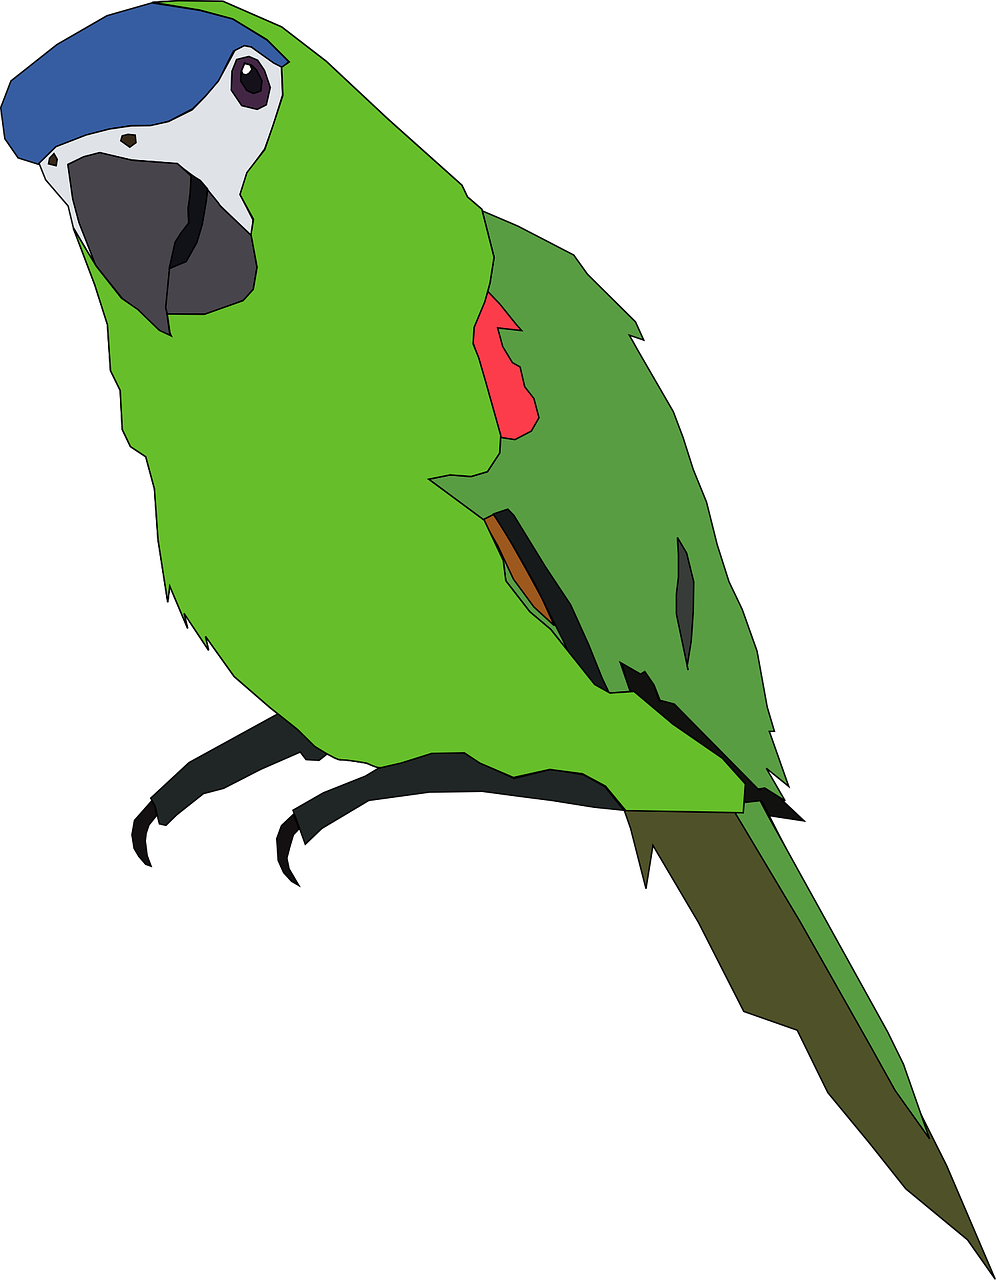 Forest clipart parrot. Free image on pixabay